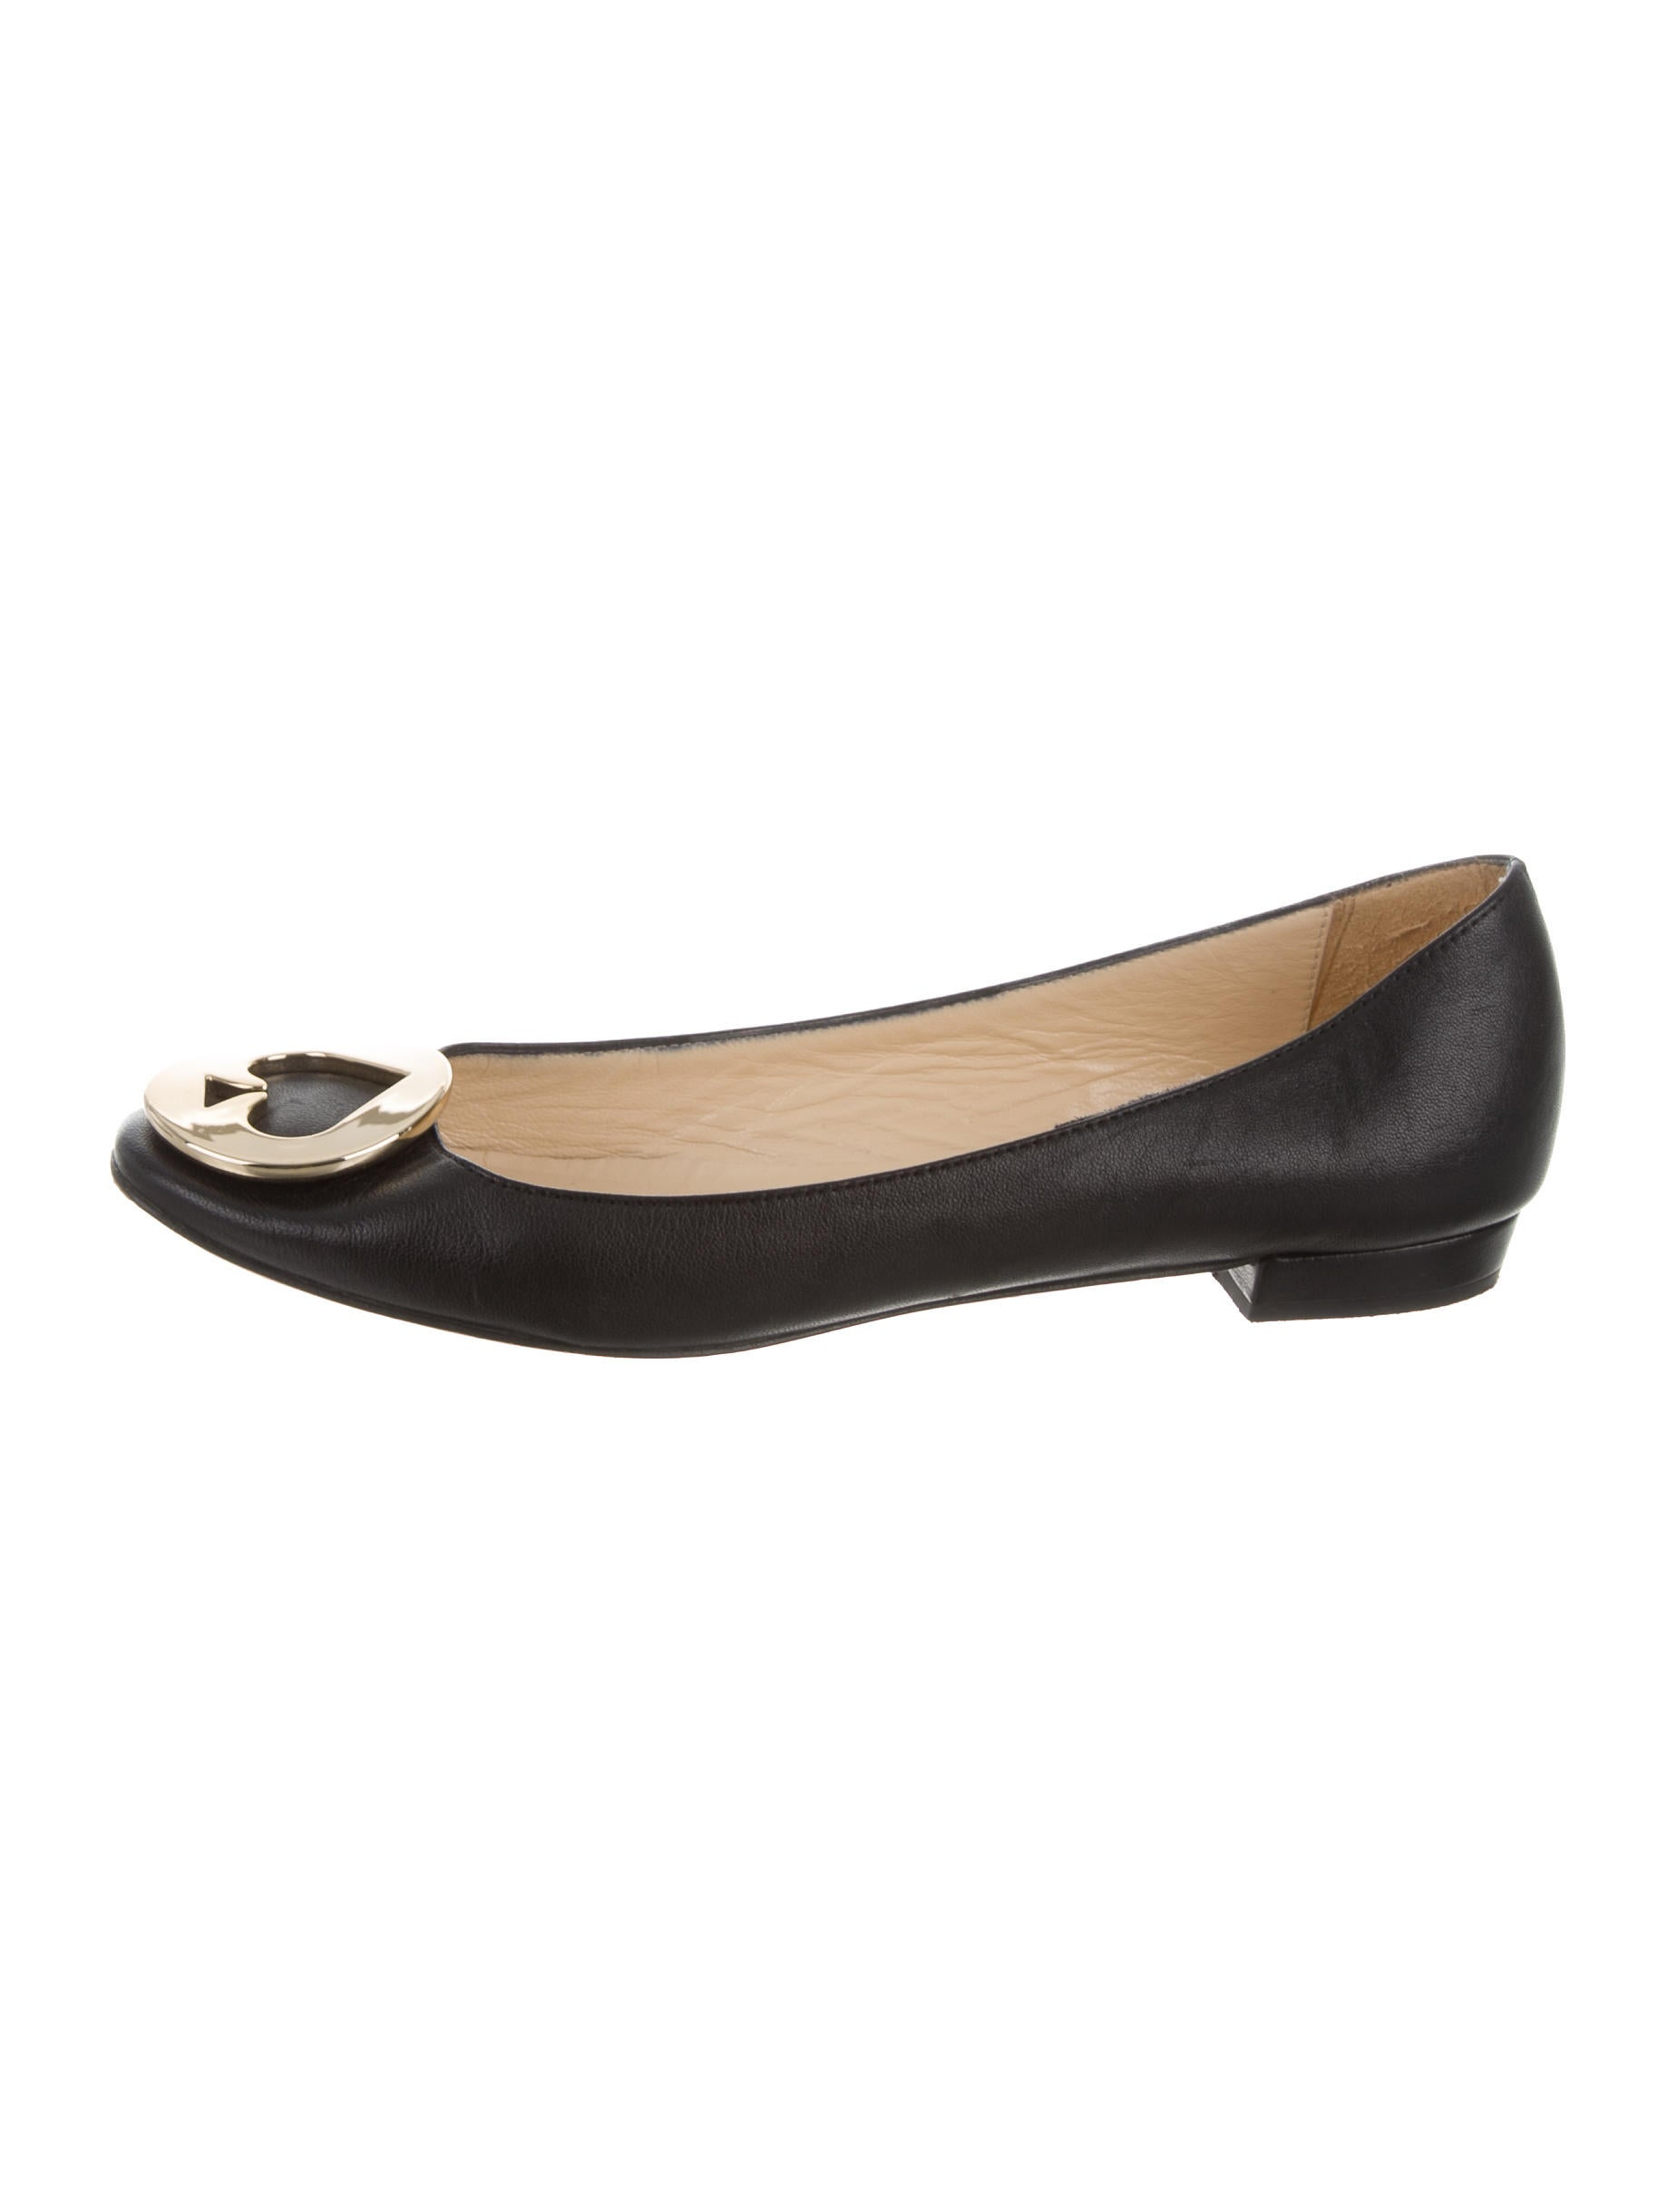 Kate spade new york leather logo flats shoes wka54549 for Kate spade new york flats